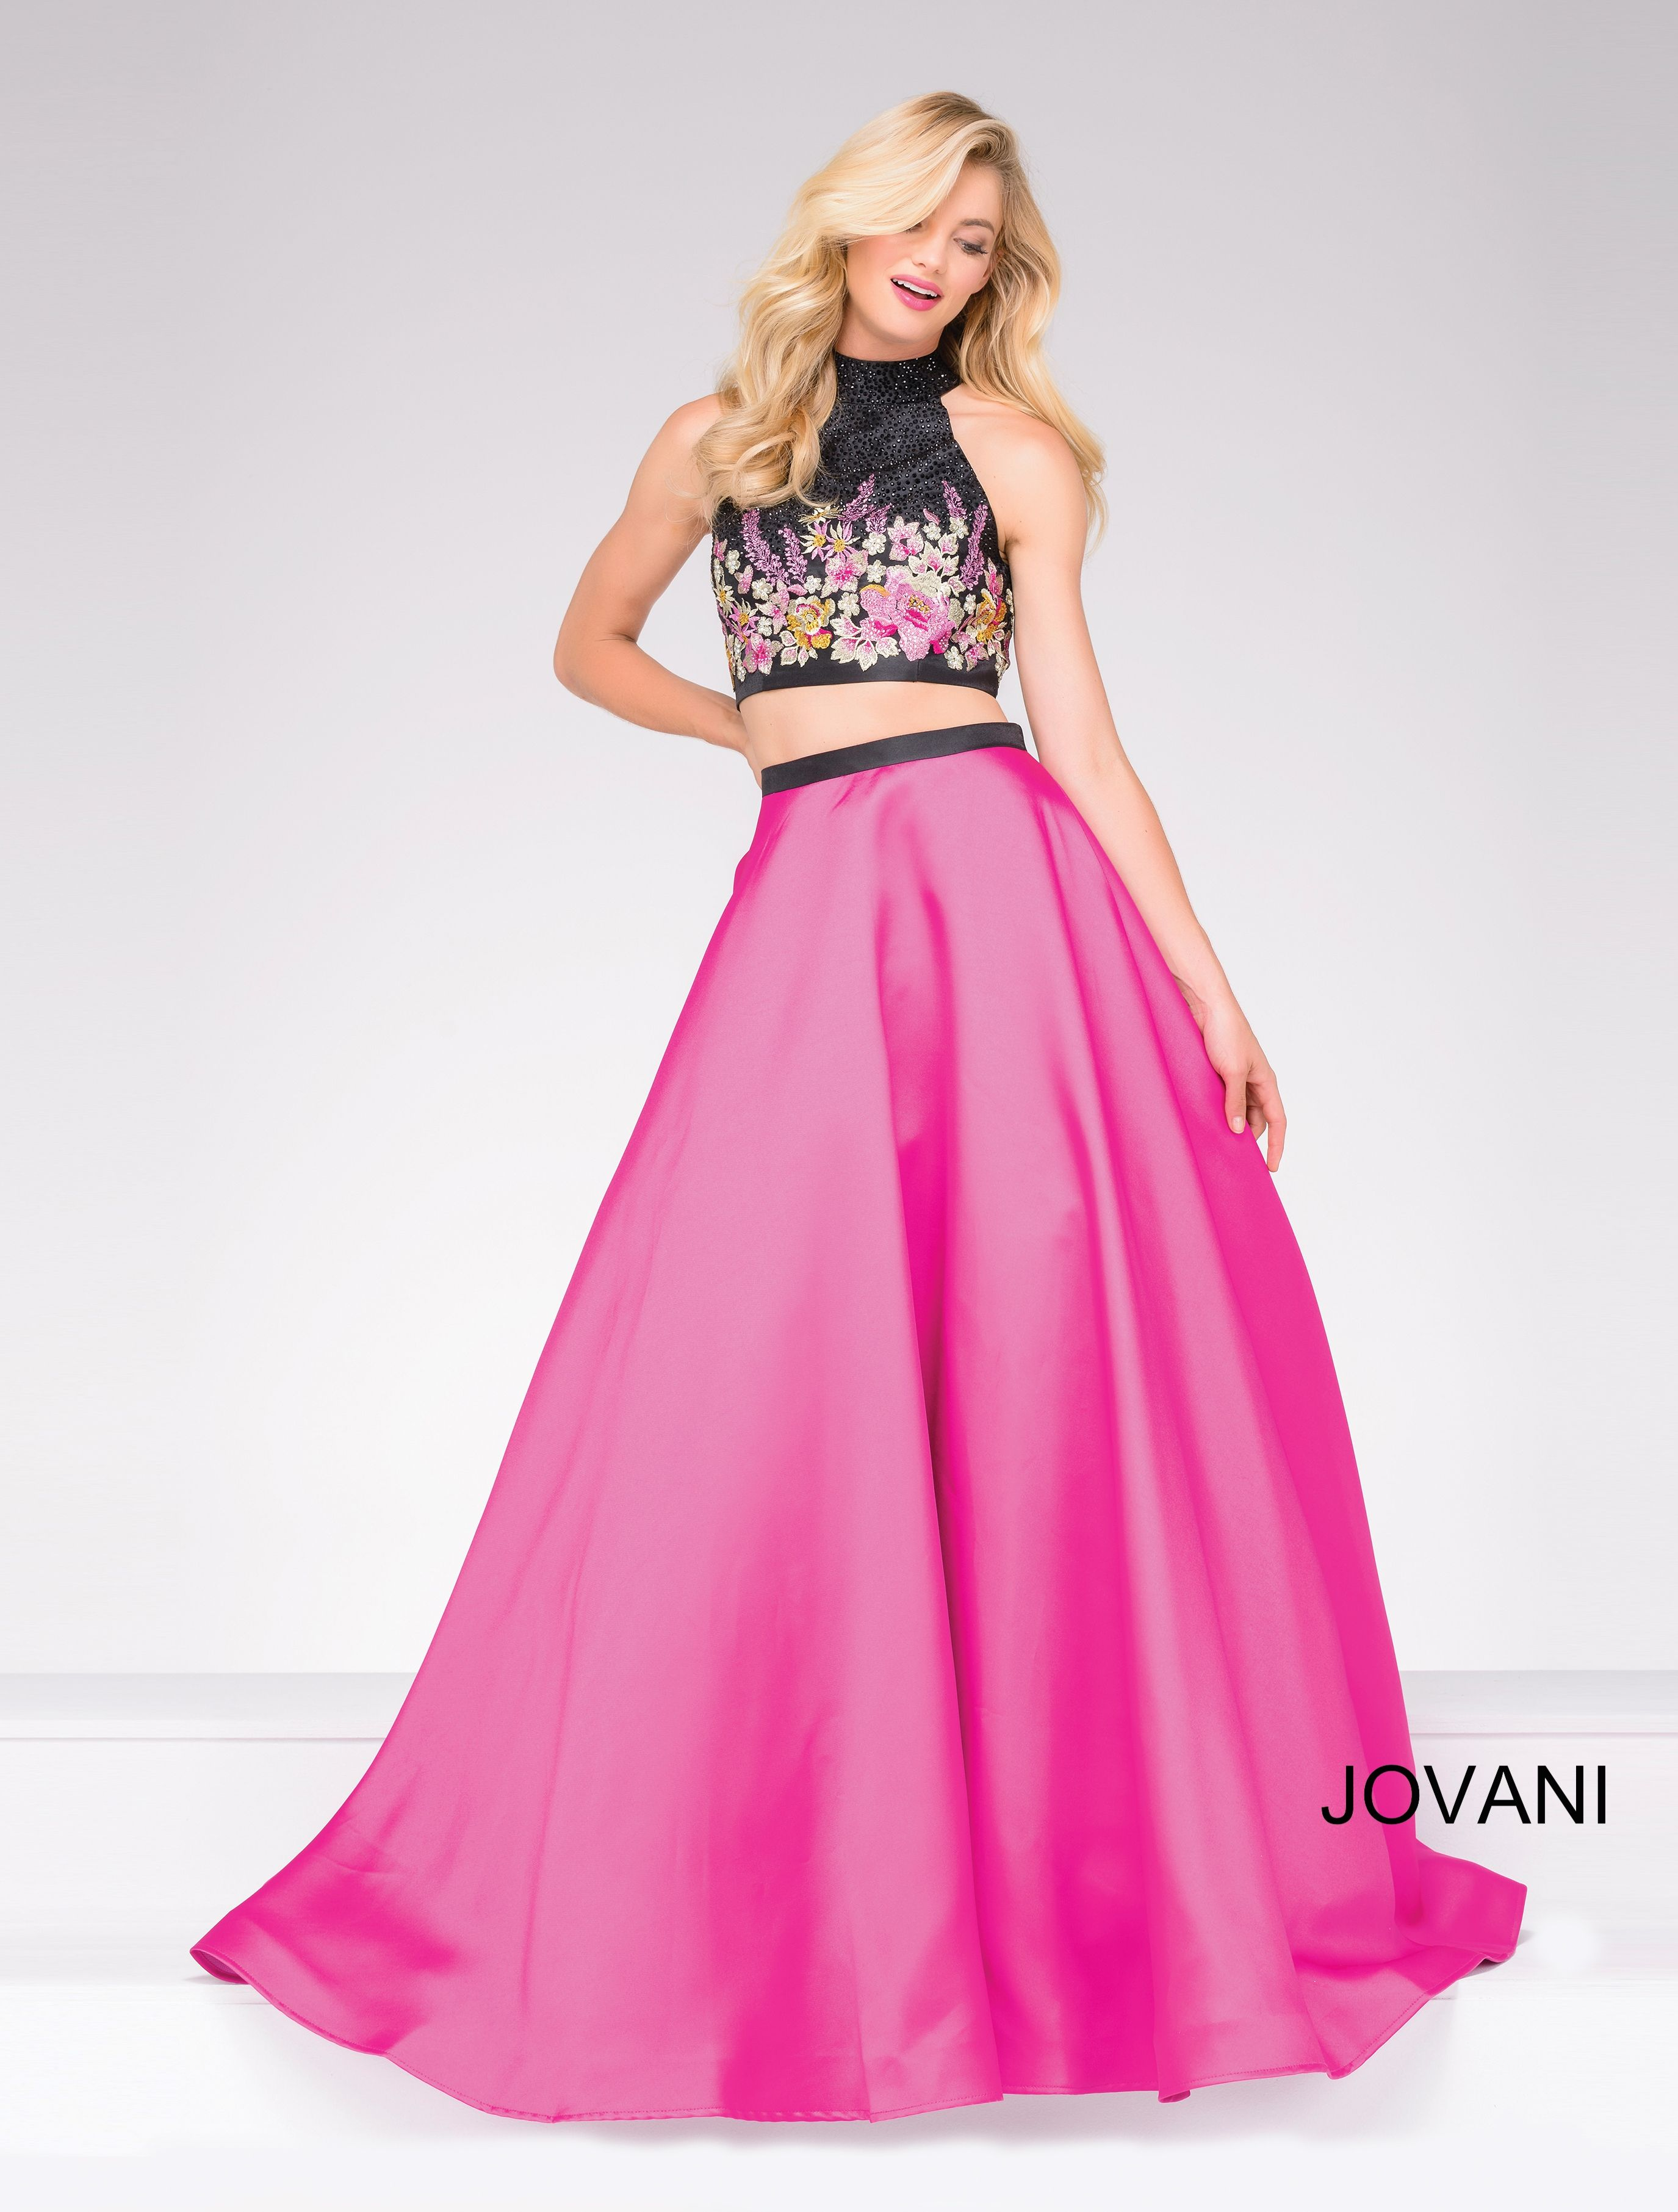 Jovani two piece prom dress with floral pattern top and pink full ...